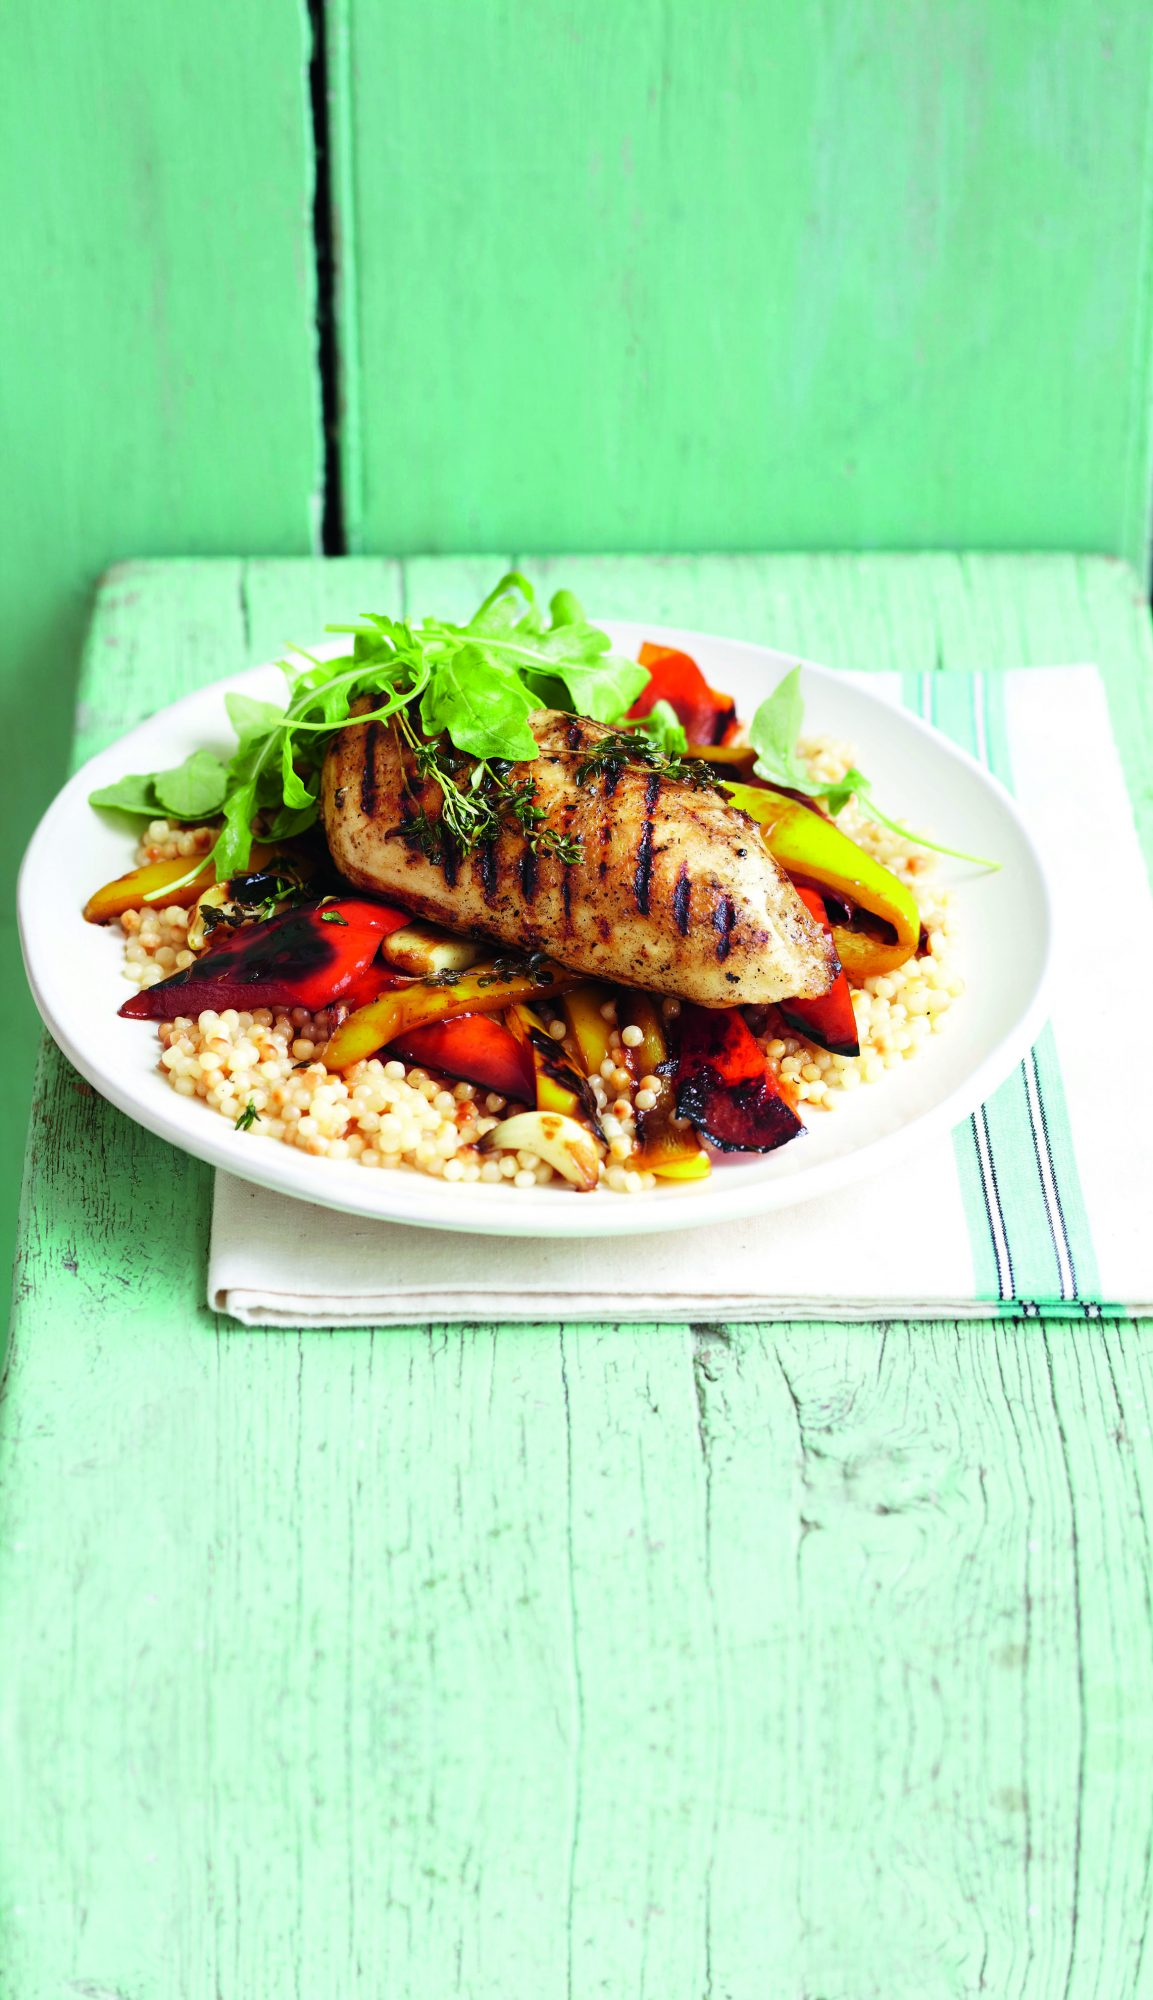 oh- Pan-Fried Chicken with Balsamic Peppers and Couscous